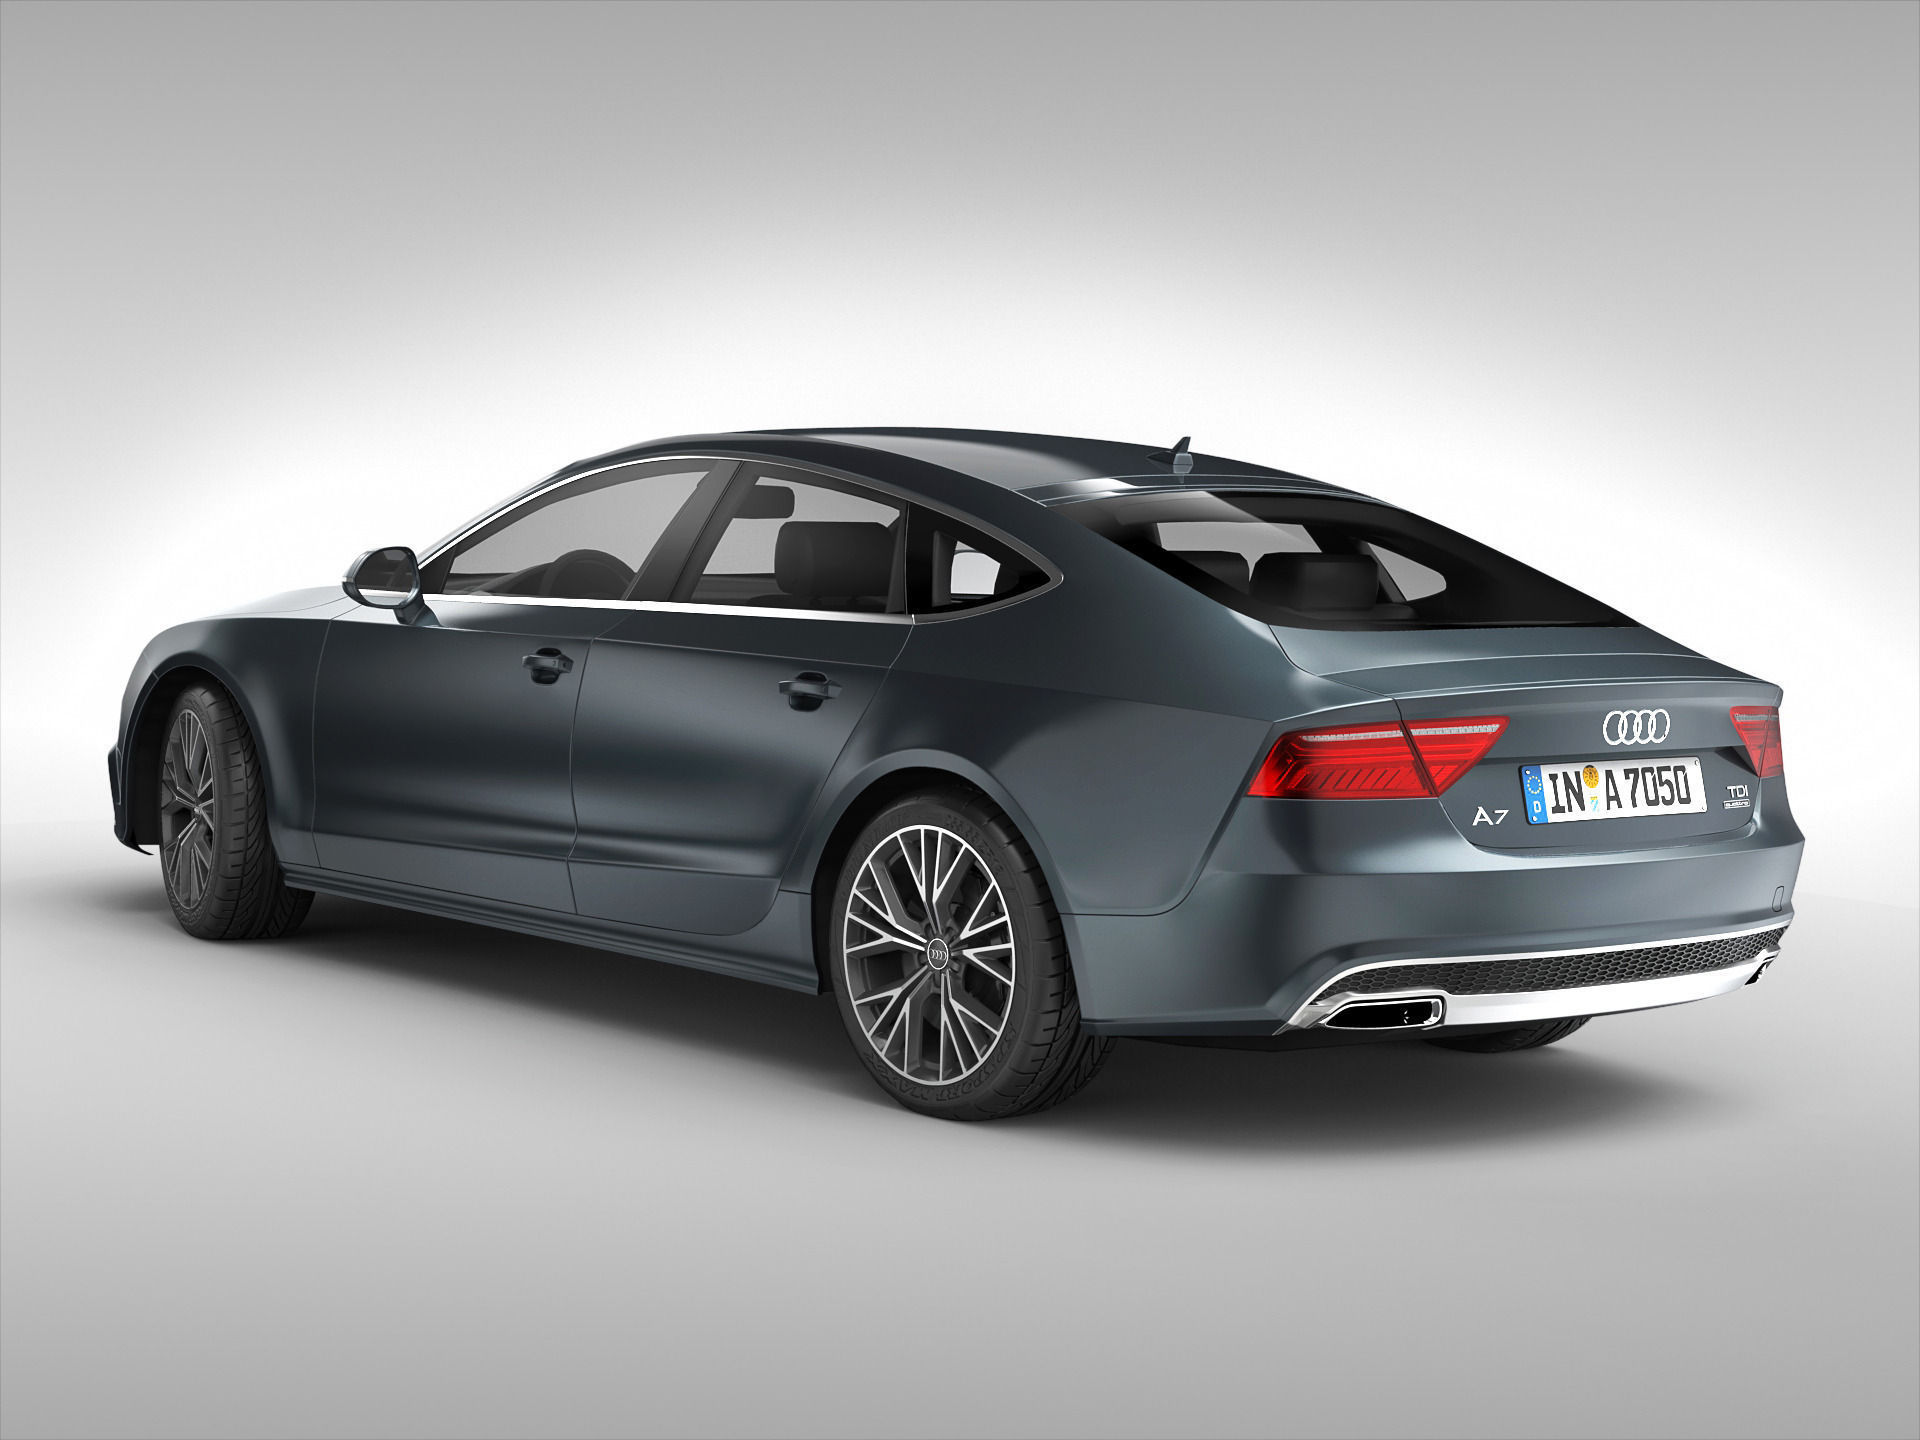 audi a7 sportback 2015 3d model max obj 3ds fbx. Black Bedroom Furniture Sets. Home Design Ideas